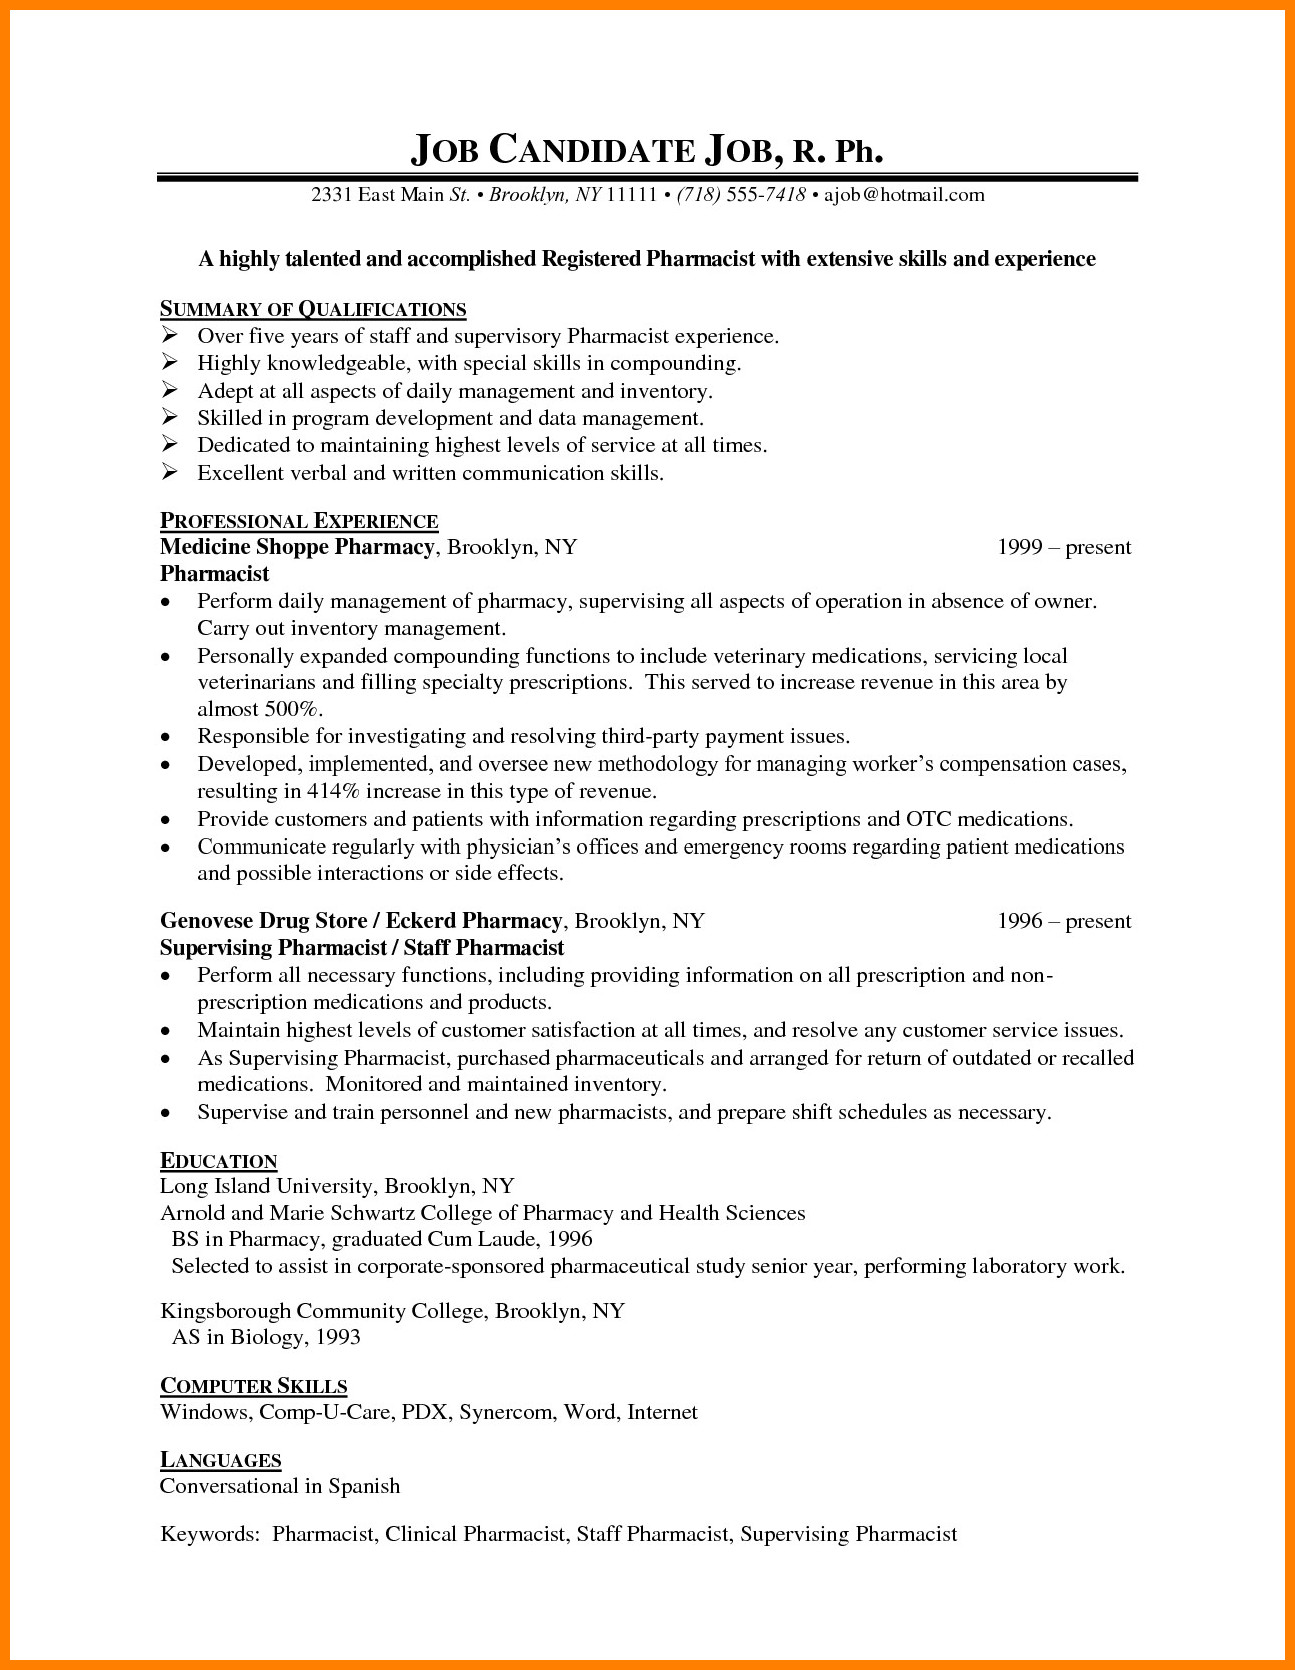 Pharmacy Curriculum Vitae Examples 8 Cv Sample for Pharmacist